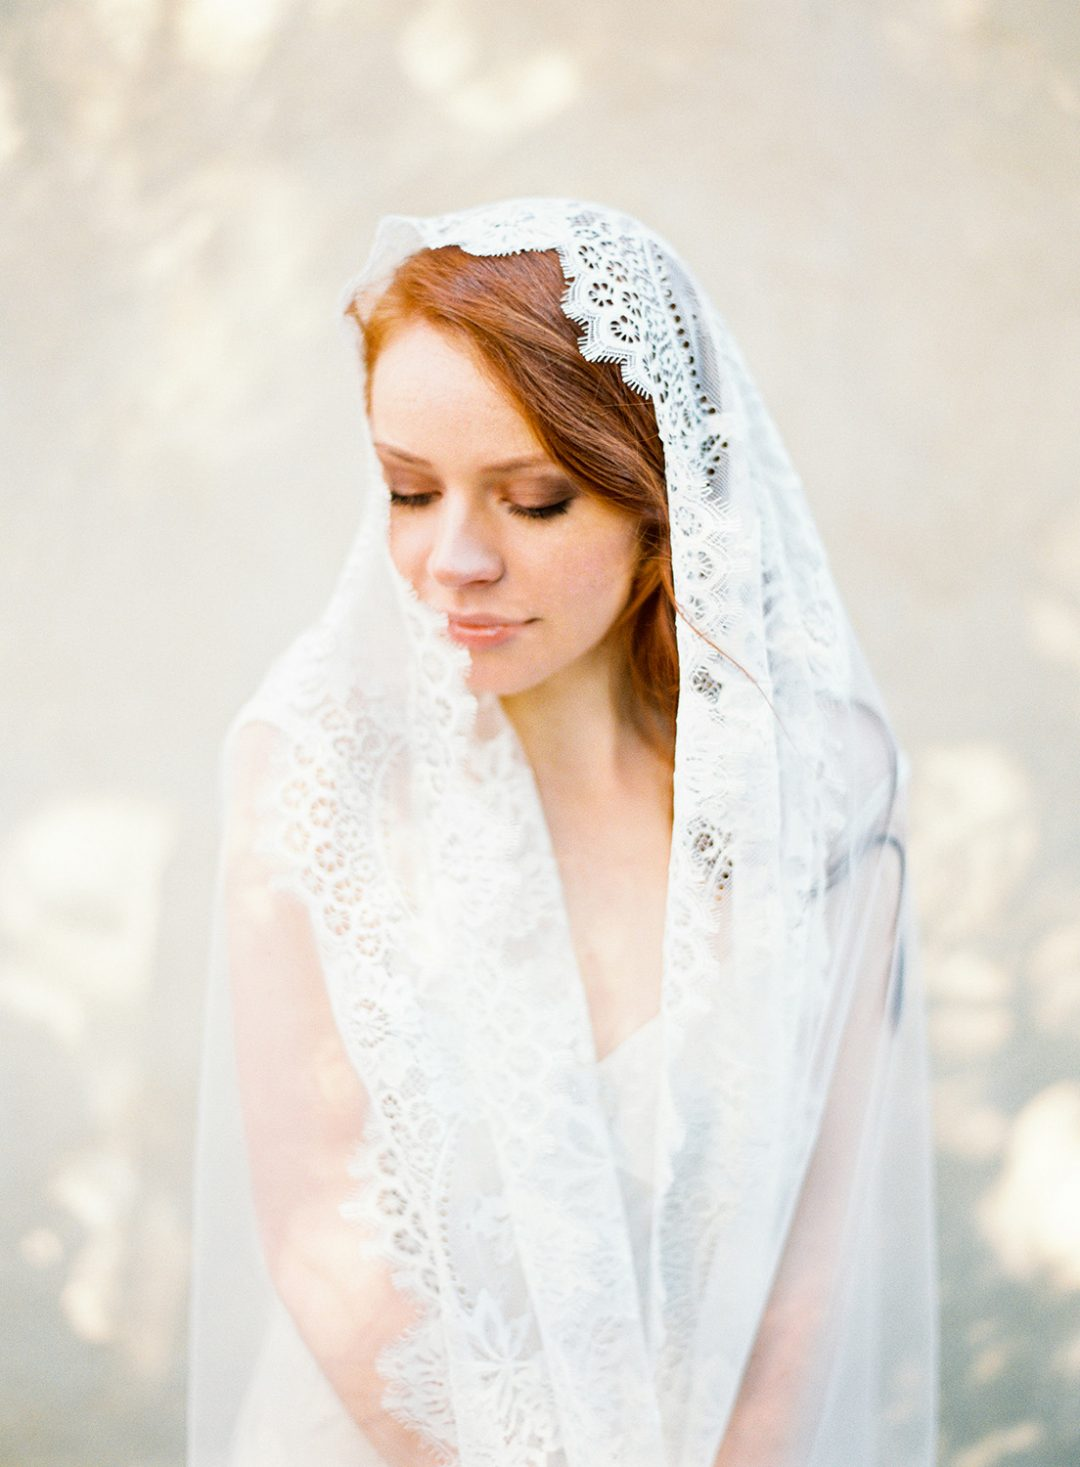 Long Cathedral Mantilla Veil with ivory lace trim, handmade by SIBO Designs www.sibodesigns.com